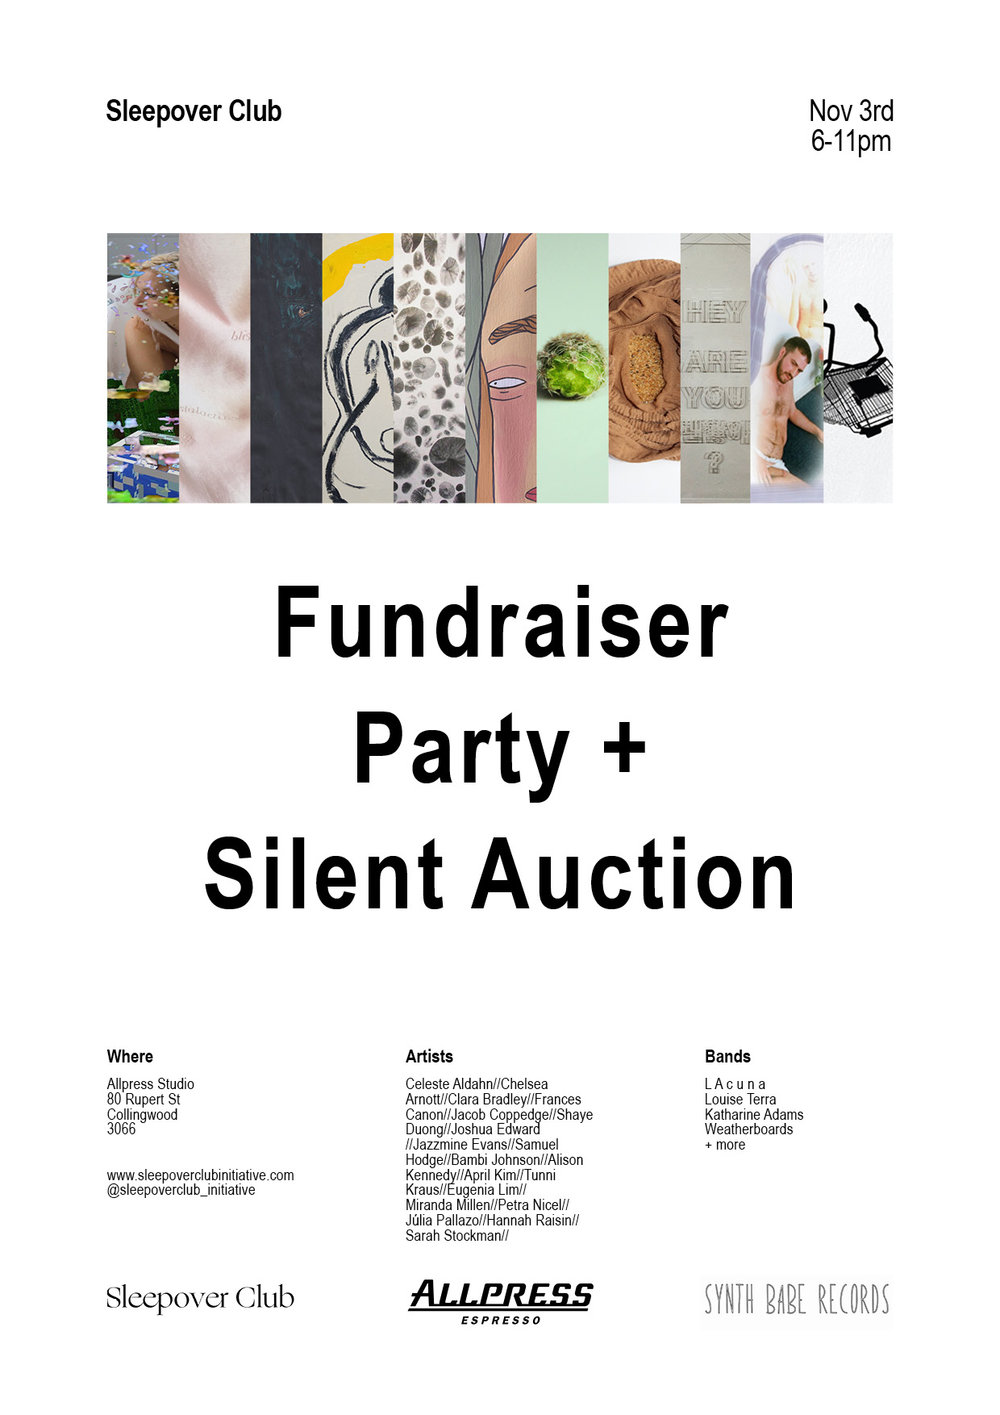 Fundraiser Party + Silent Auction